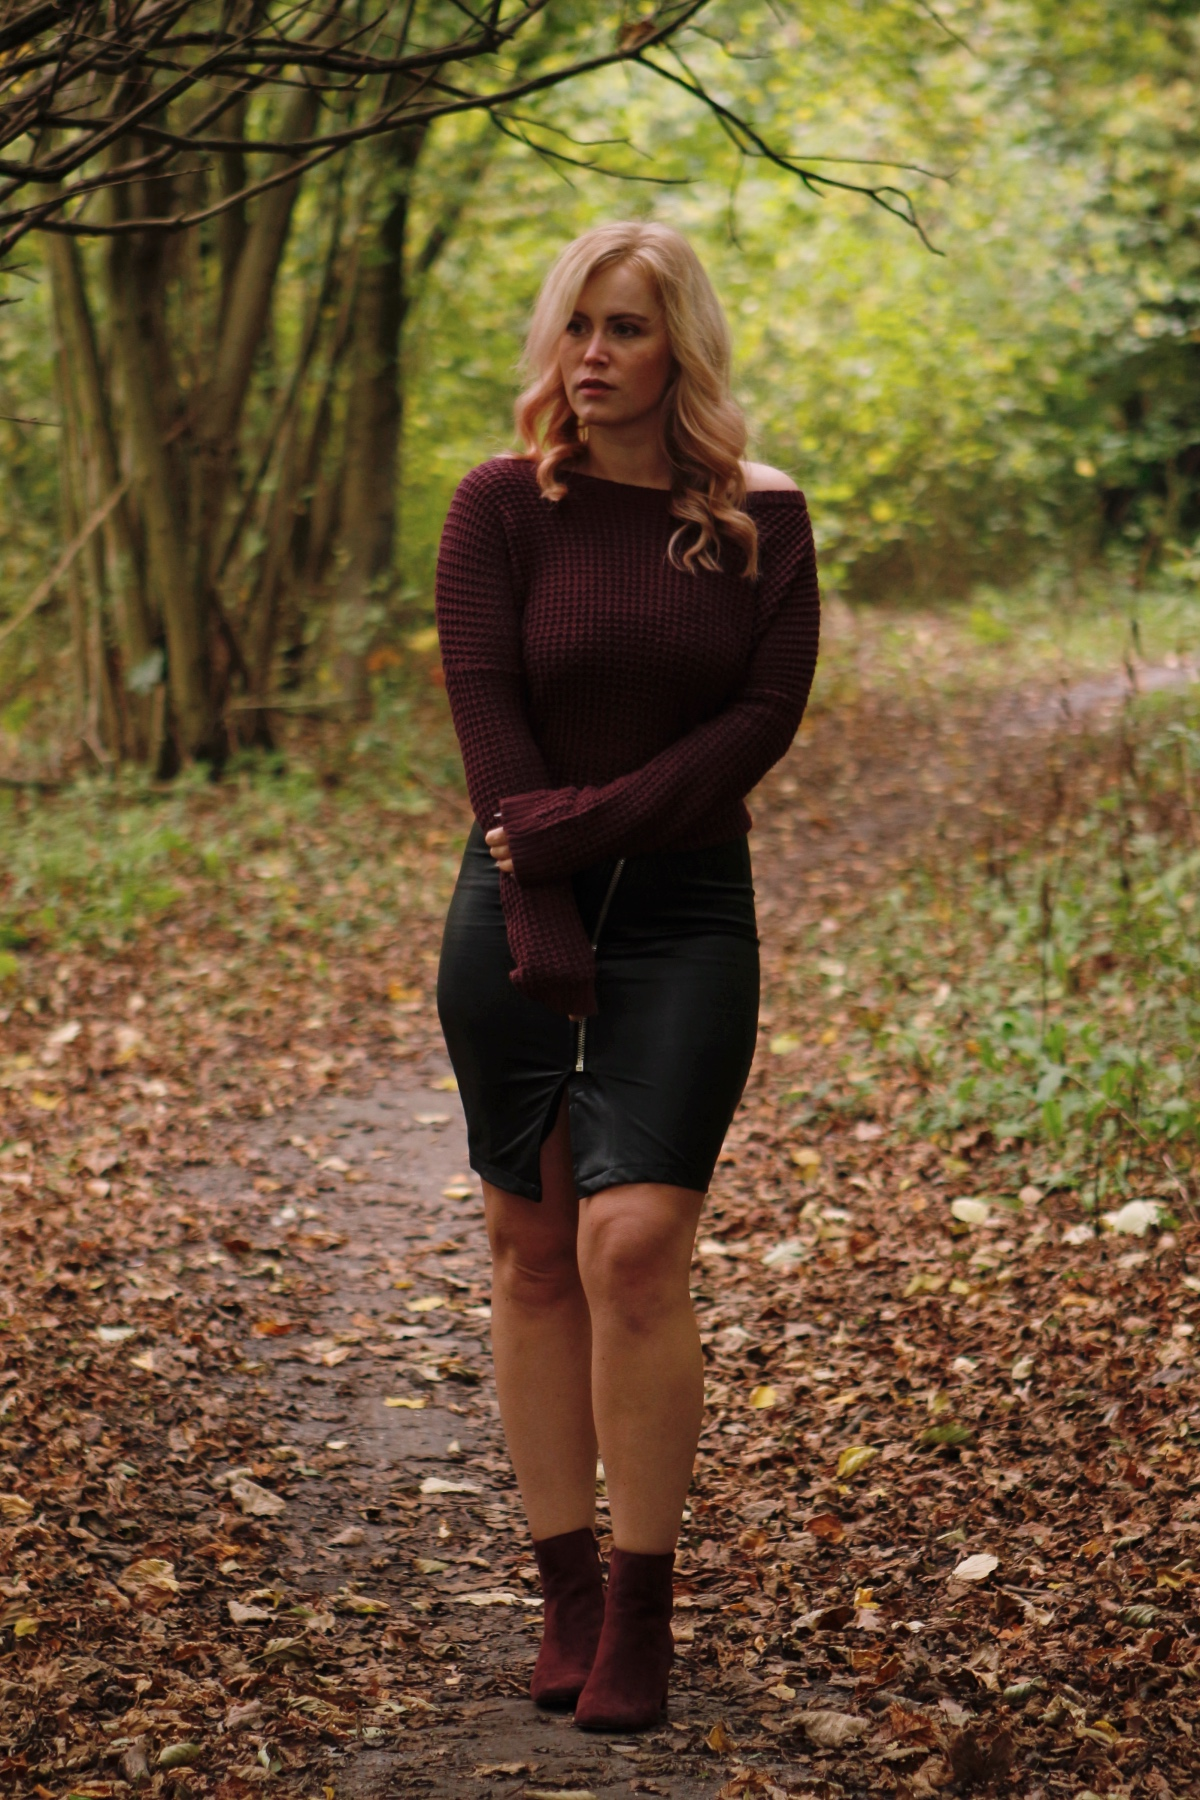 Leather skirt and lots of burgundy